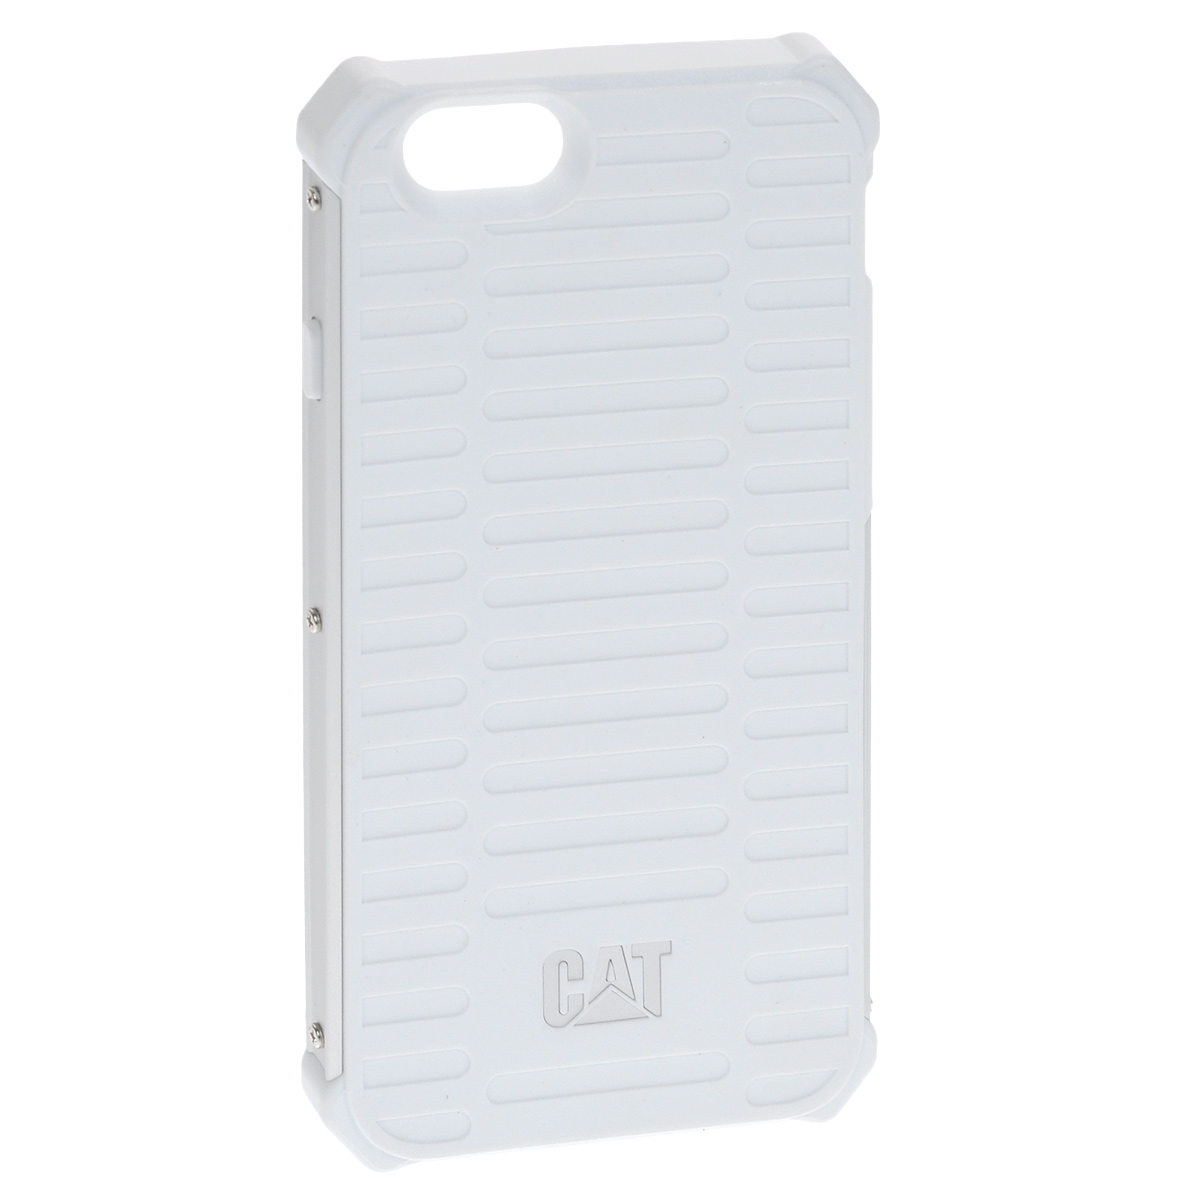 Caterpillar Active Urban противоударный чехол для iPhone 6, White caterpillar active signature для apple iphone 6 black